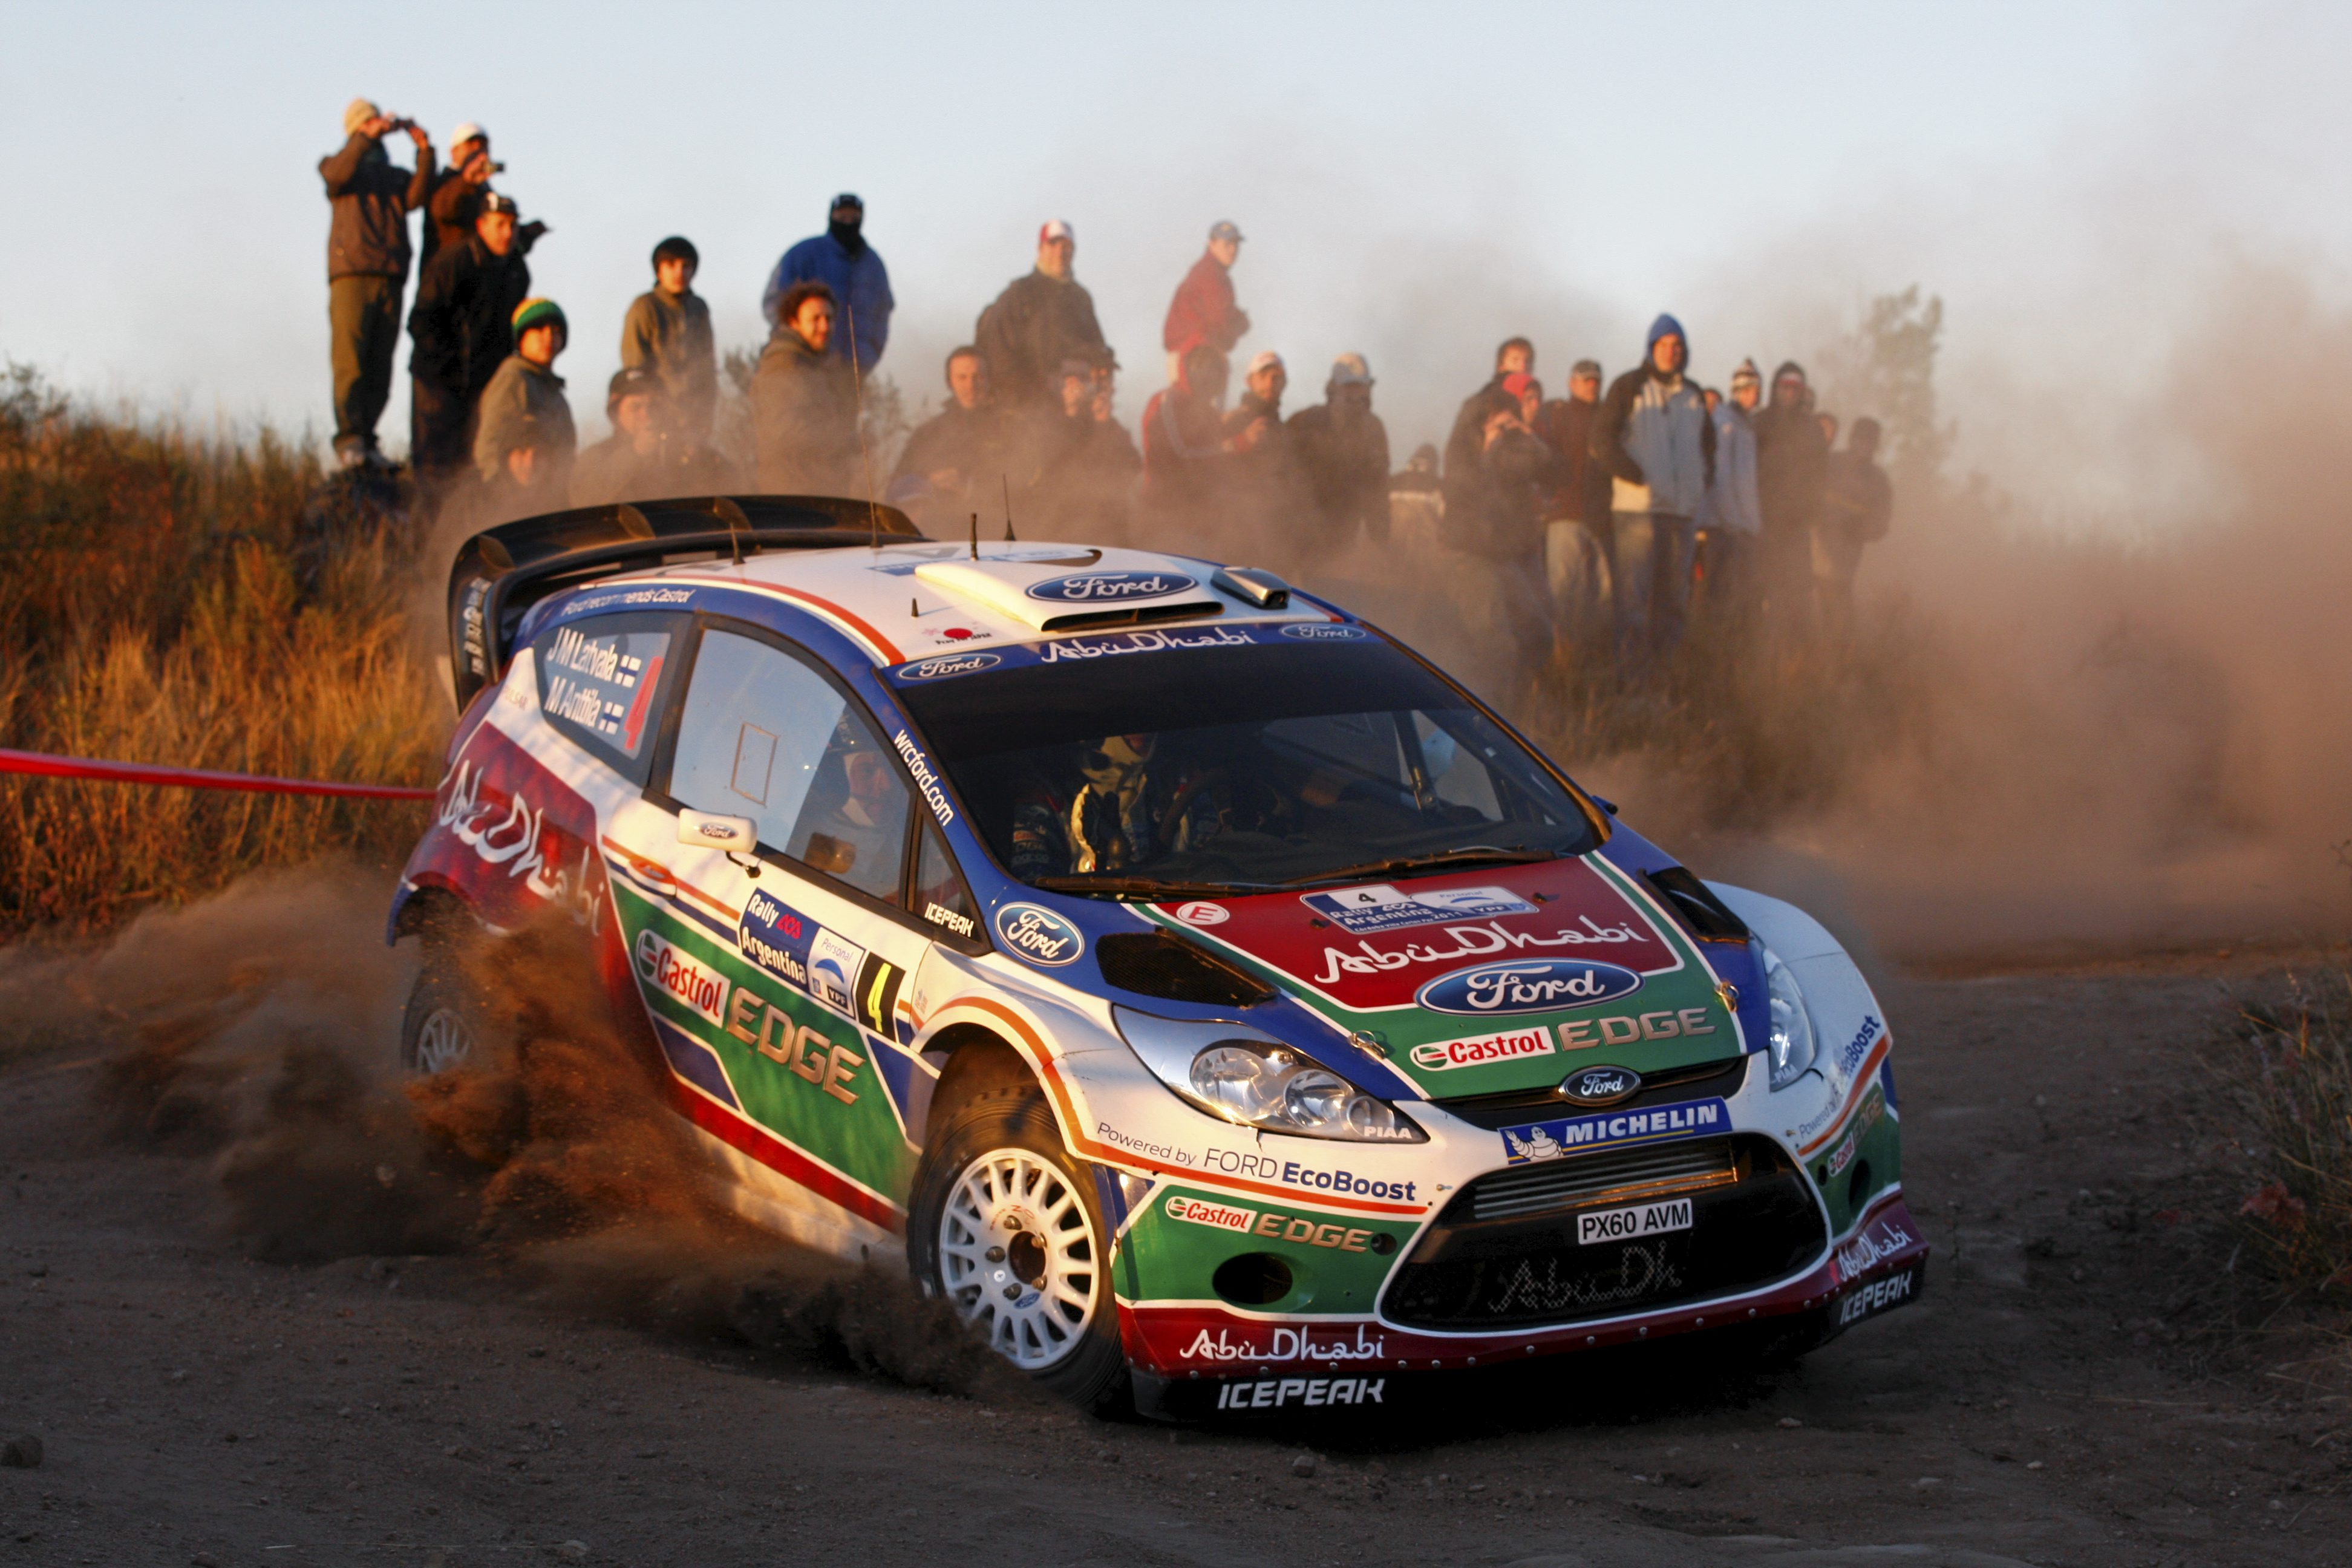 Latvala heads the field in Argentina